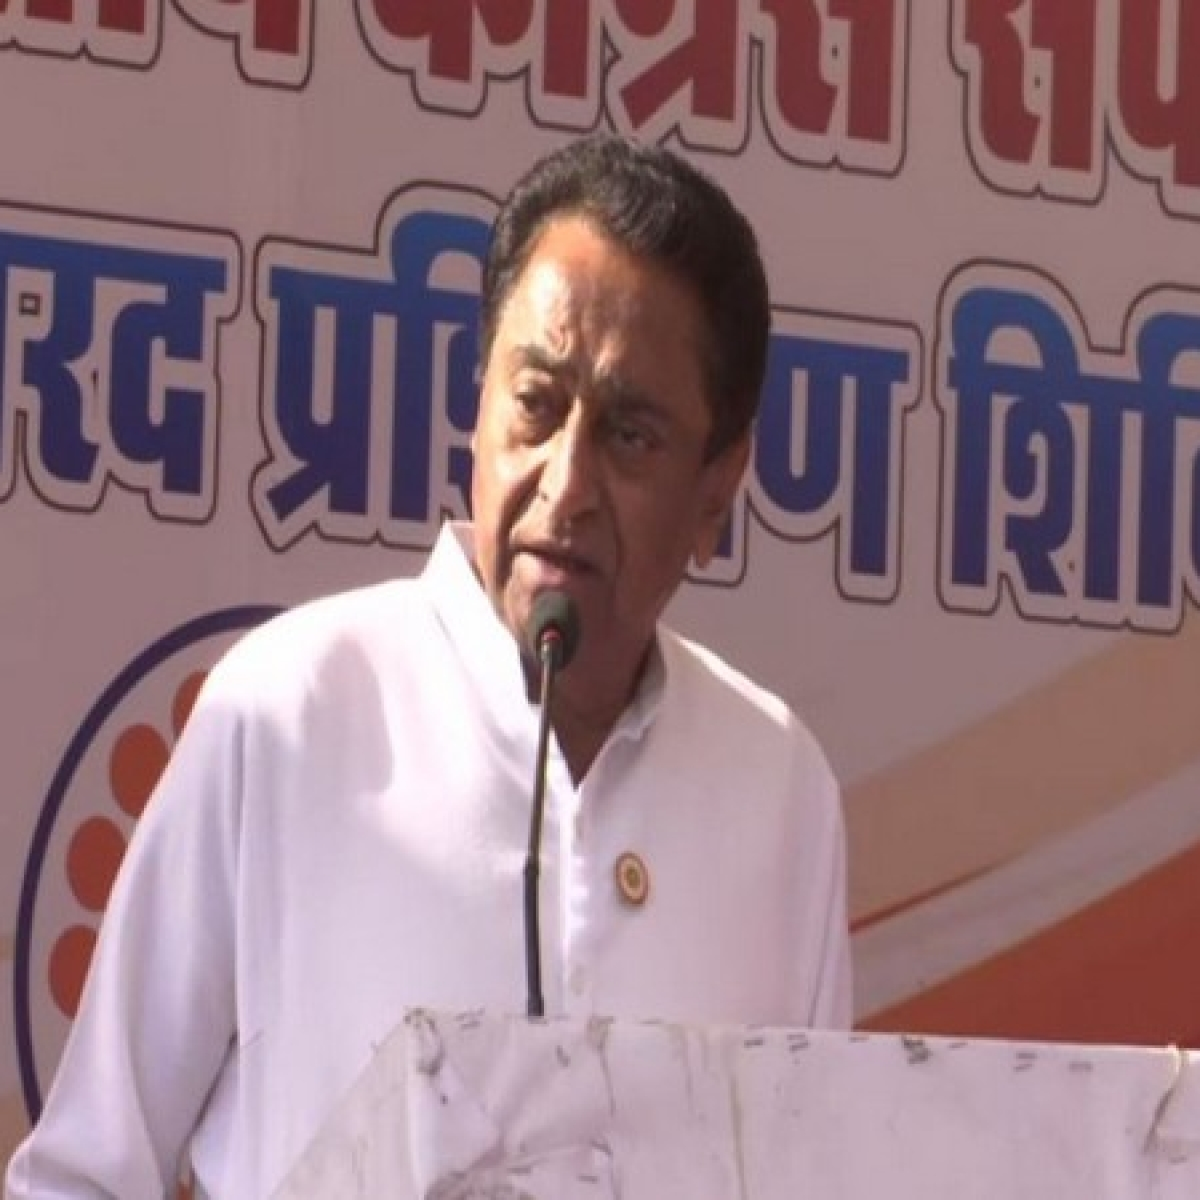 Madhya Pradesh won't be recognised for mafias, Vyapam scam: Kamal Nath